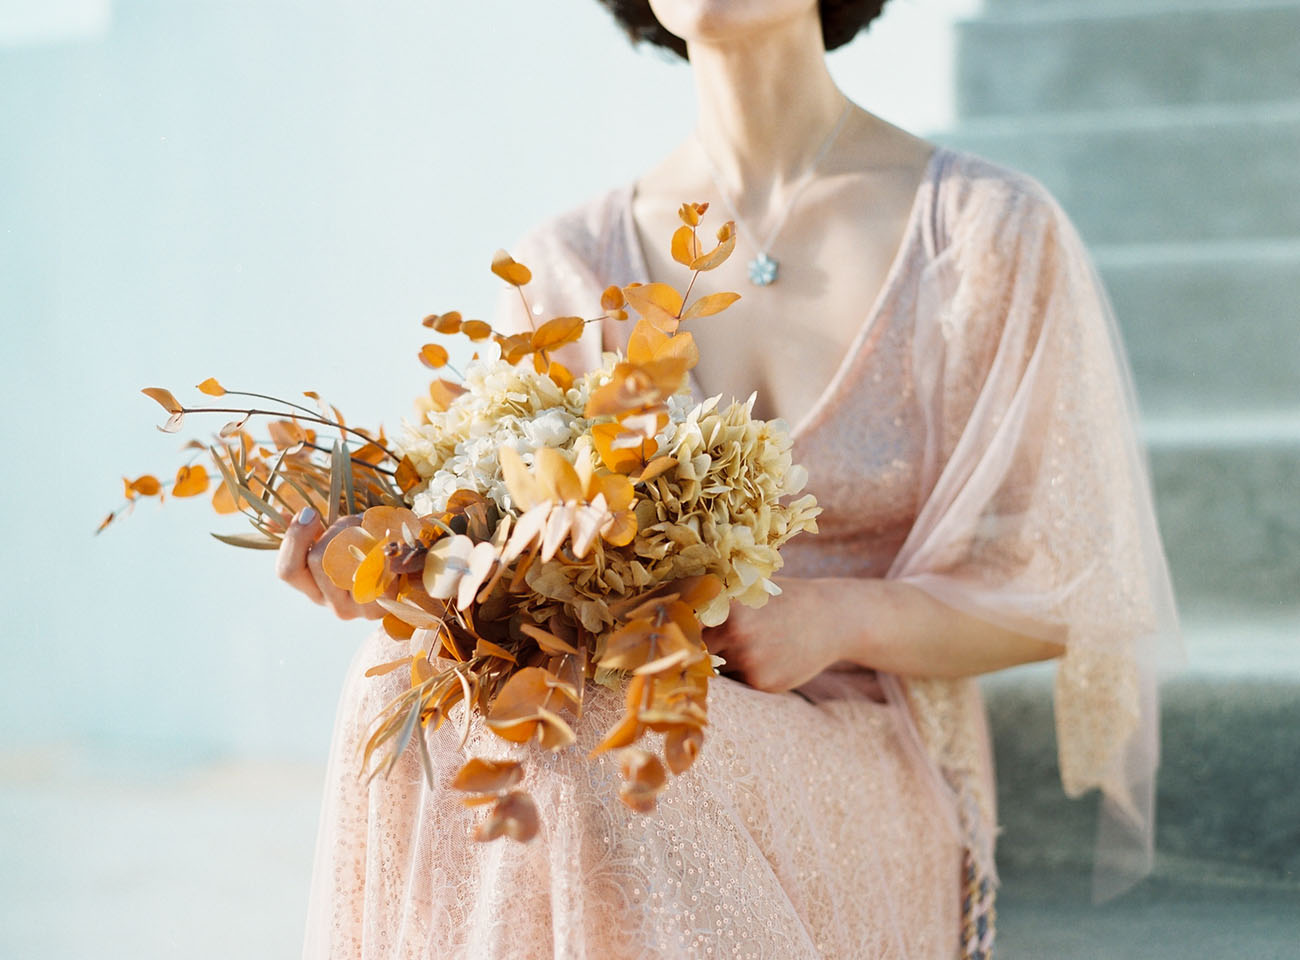 dried wedding bouquet of palm leaves, hydrangeas, and orange leaves